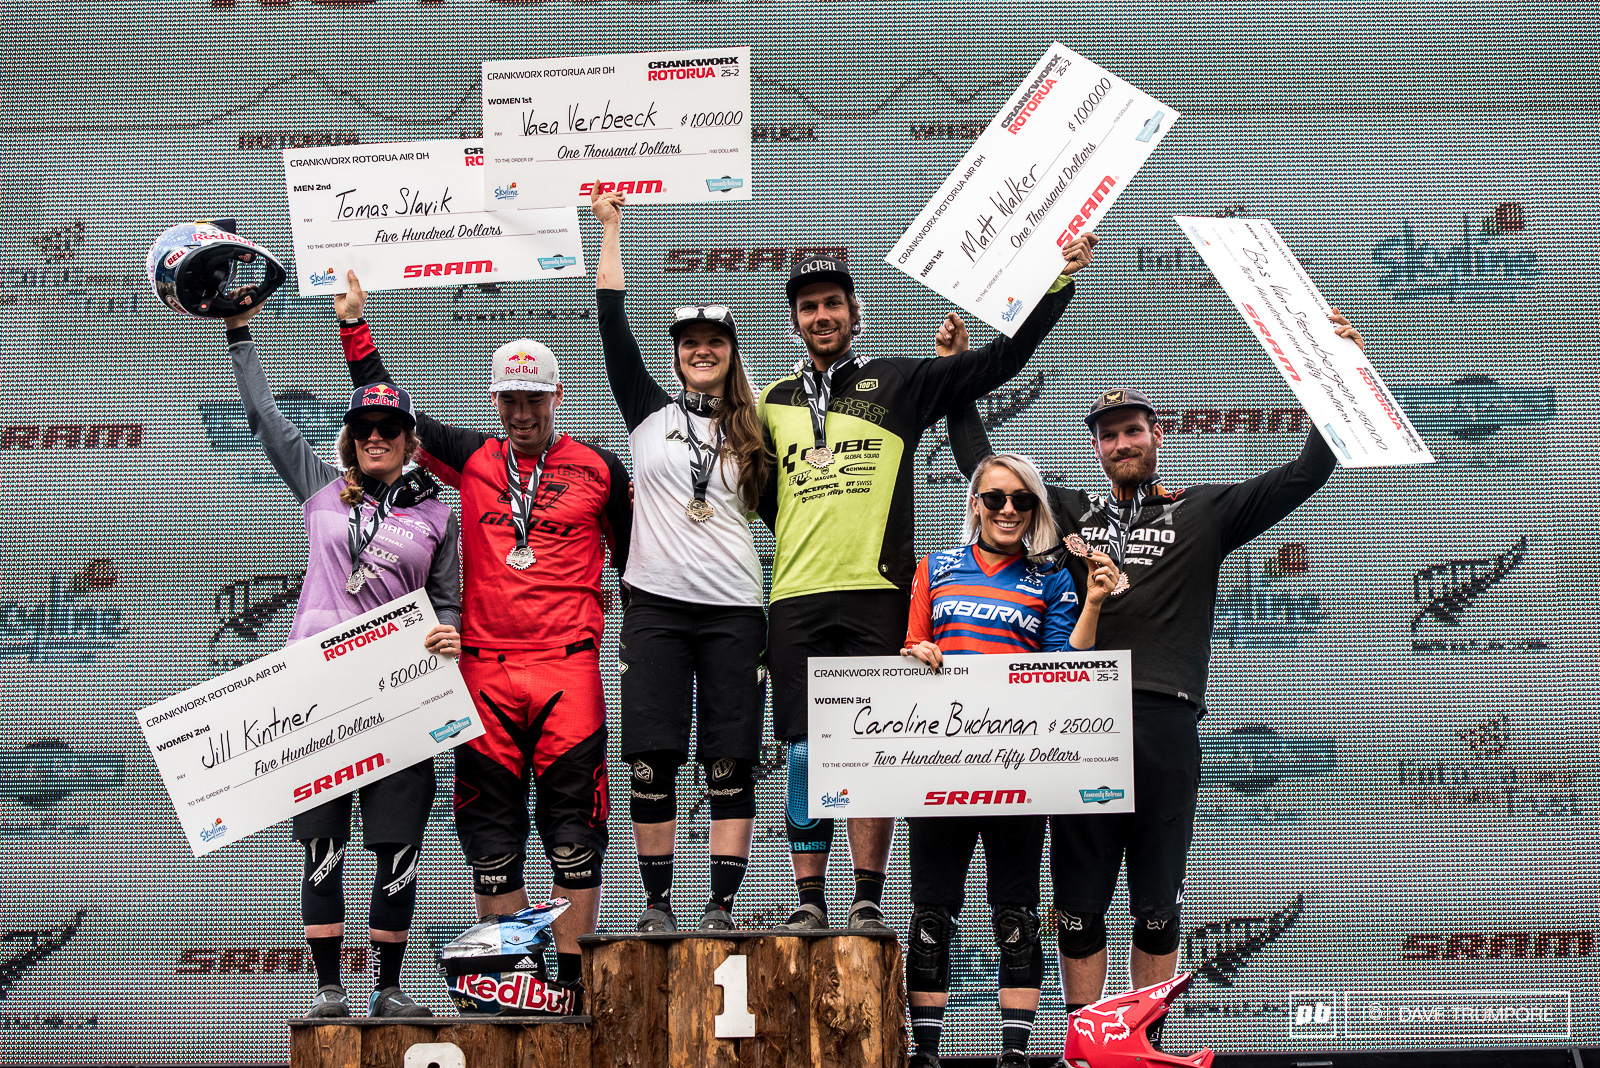 The final podium of the 2017 Crankworx Rotorua.